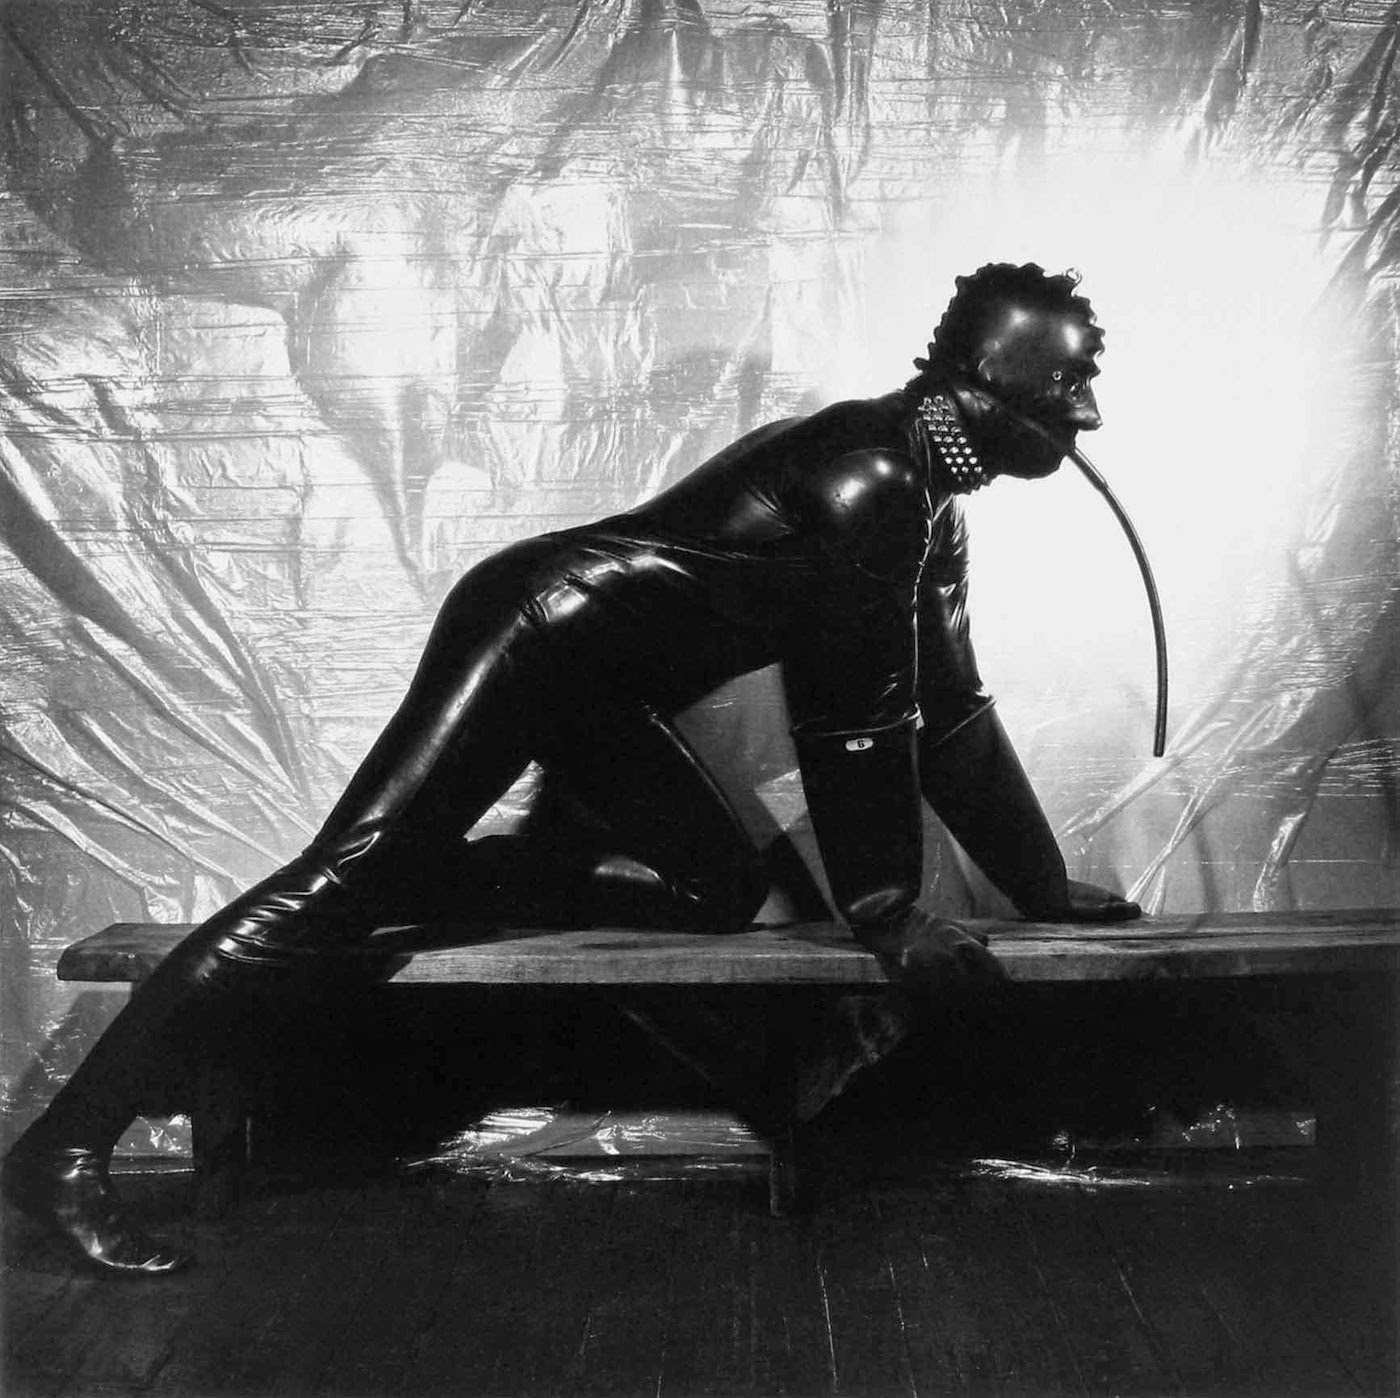 Roberth Mapplethorpe